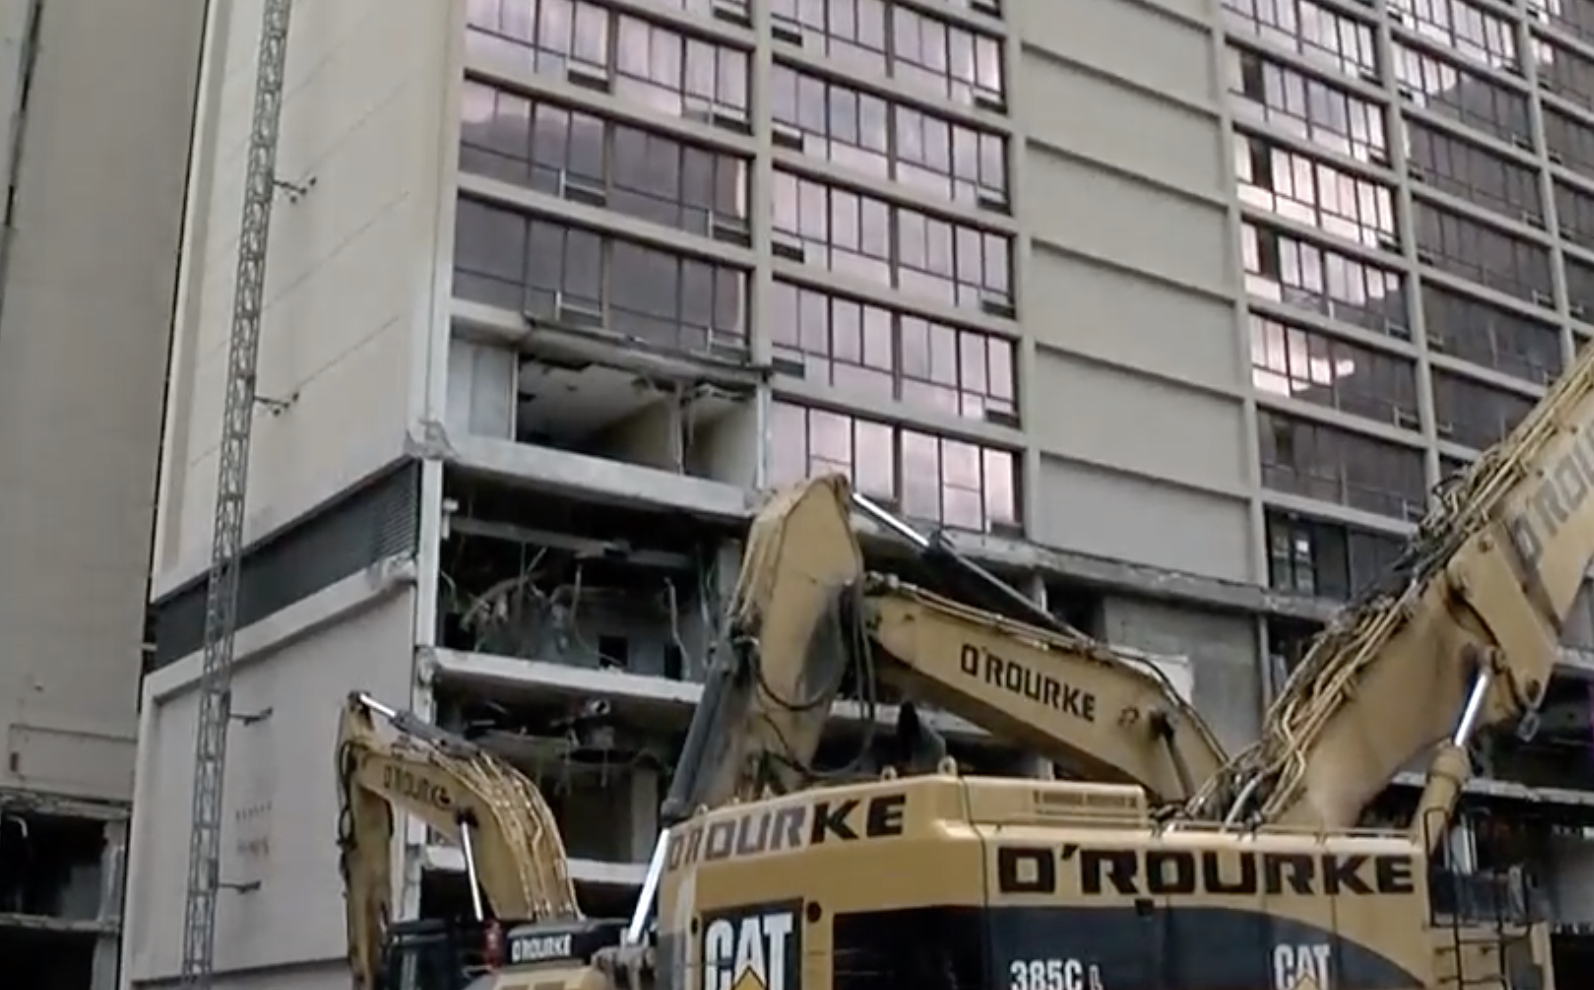 wcpo.com - Kristen Swilley - As the Millennium Hotel comes down, some are looking to the future